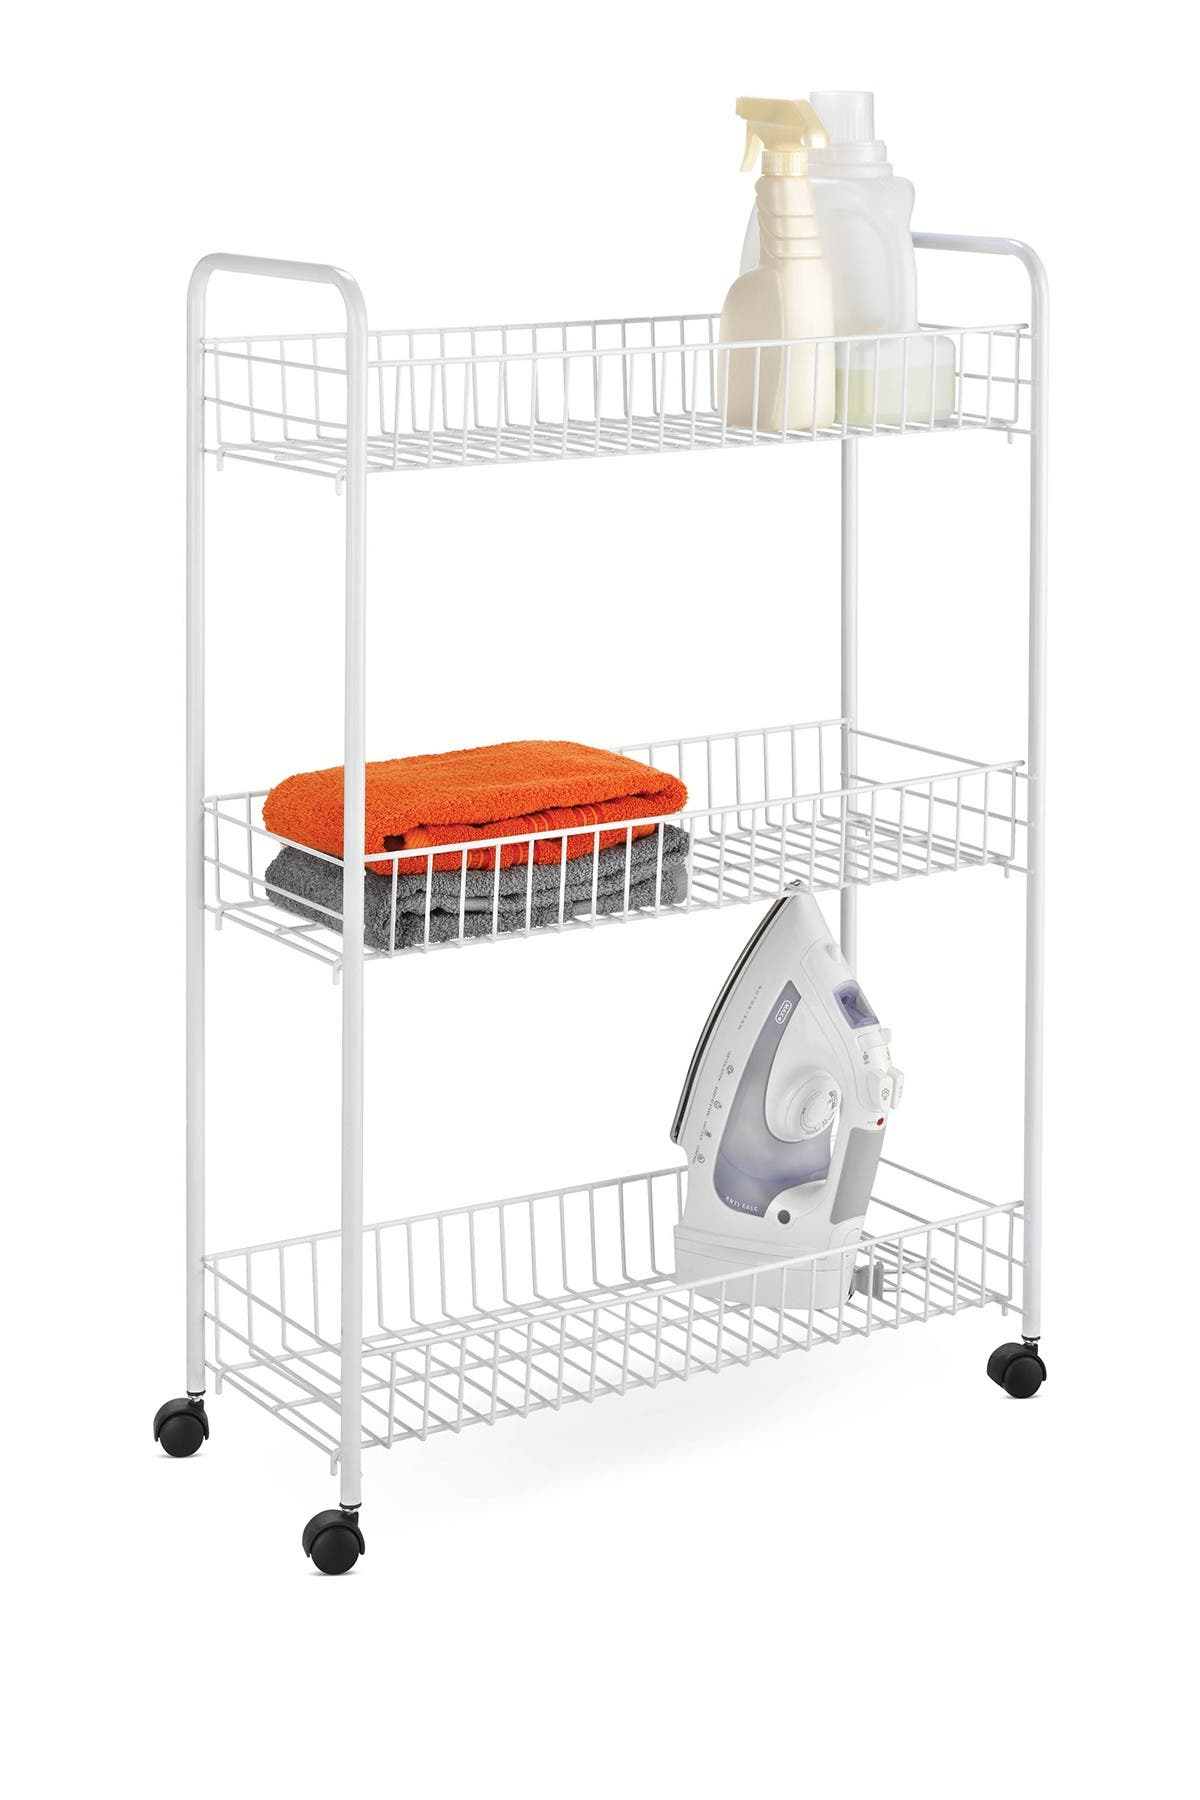 Image of Honey-Can-Do 3-Tier Rolling Laundry Cart - White